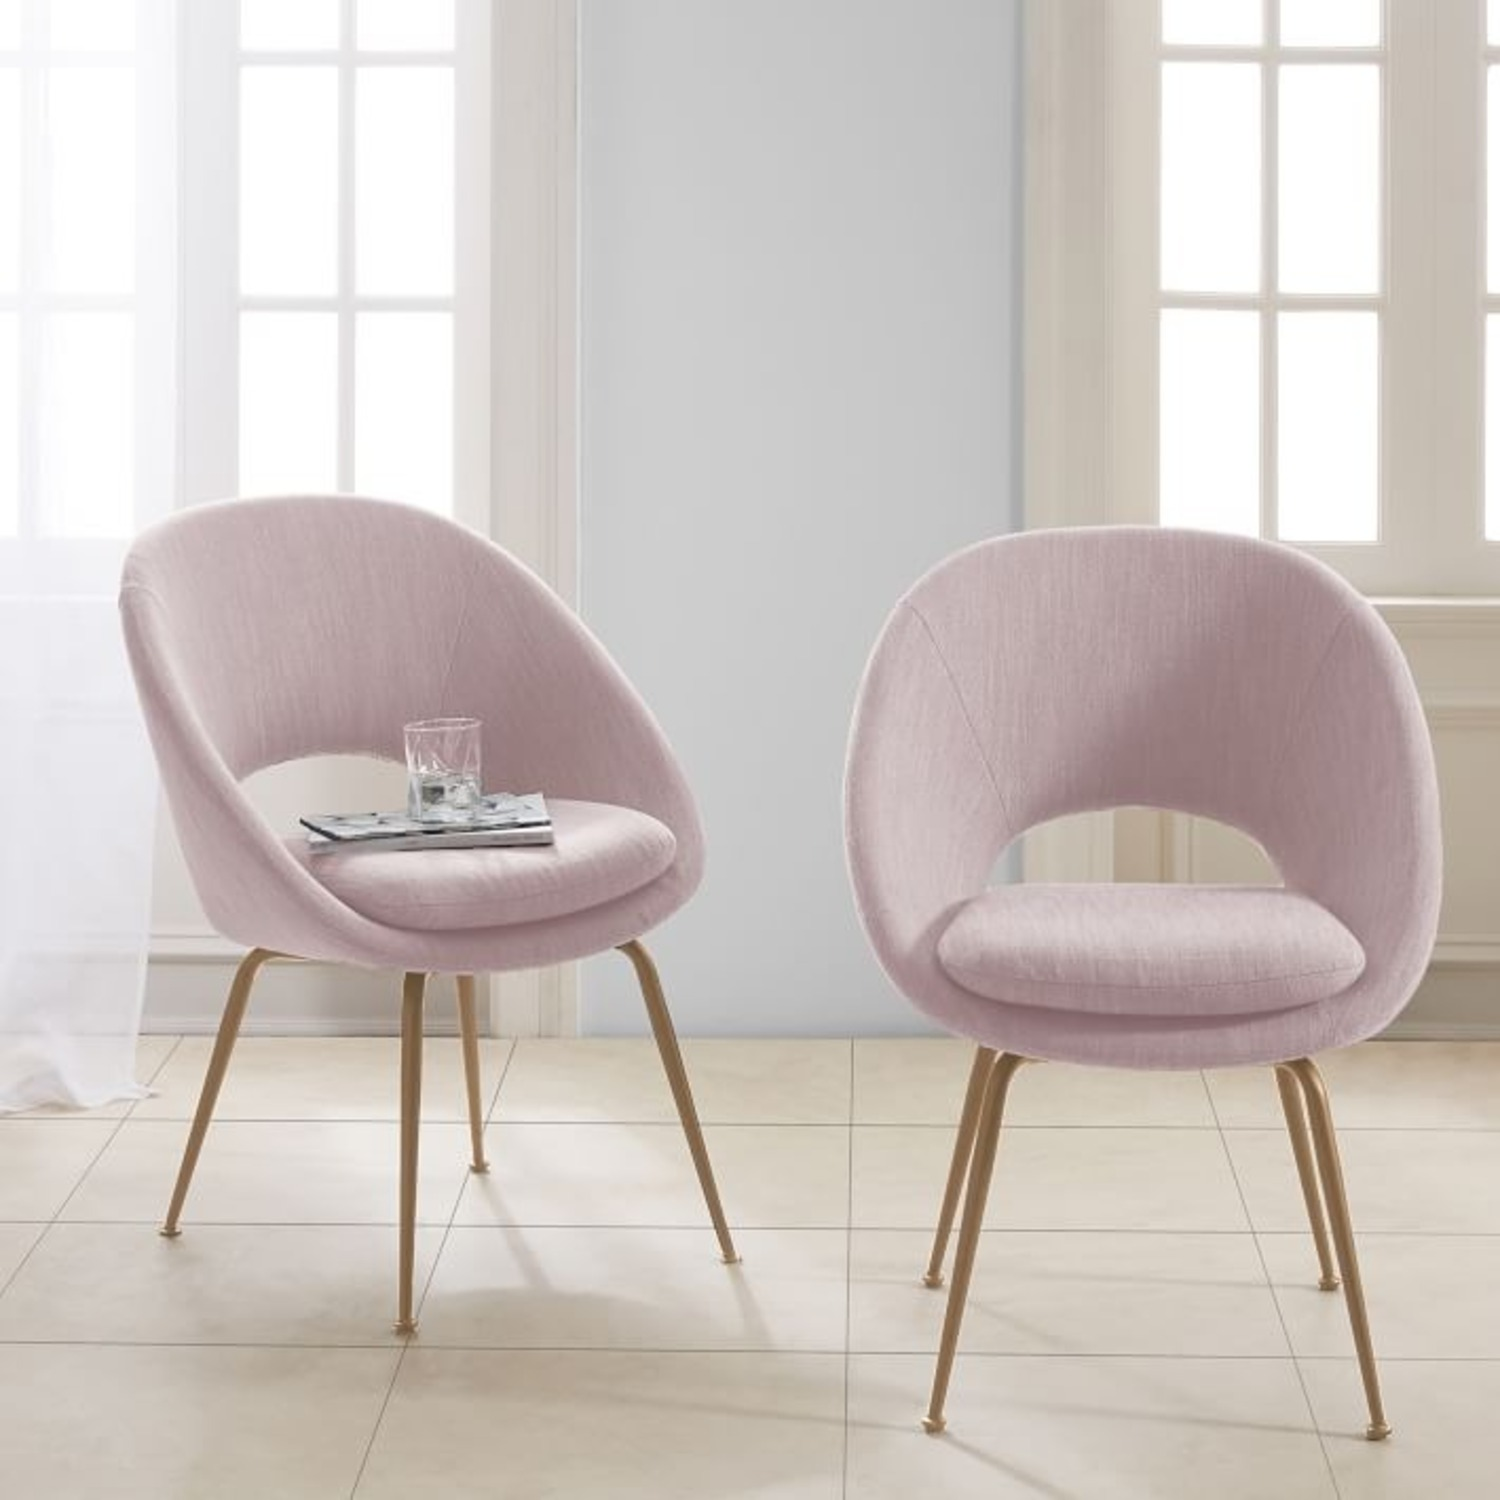 West Elm Orb Upholstered Dining Chair - image-2